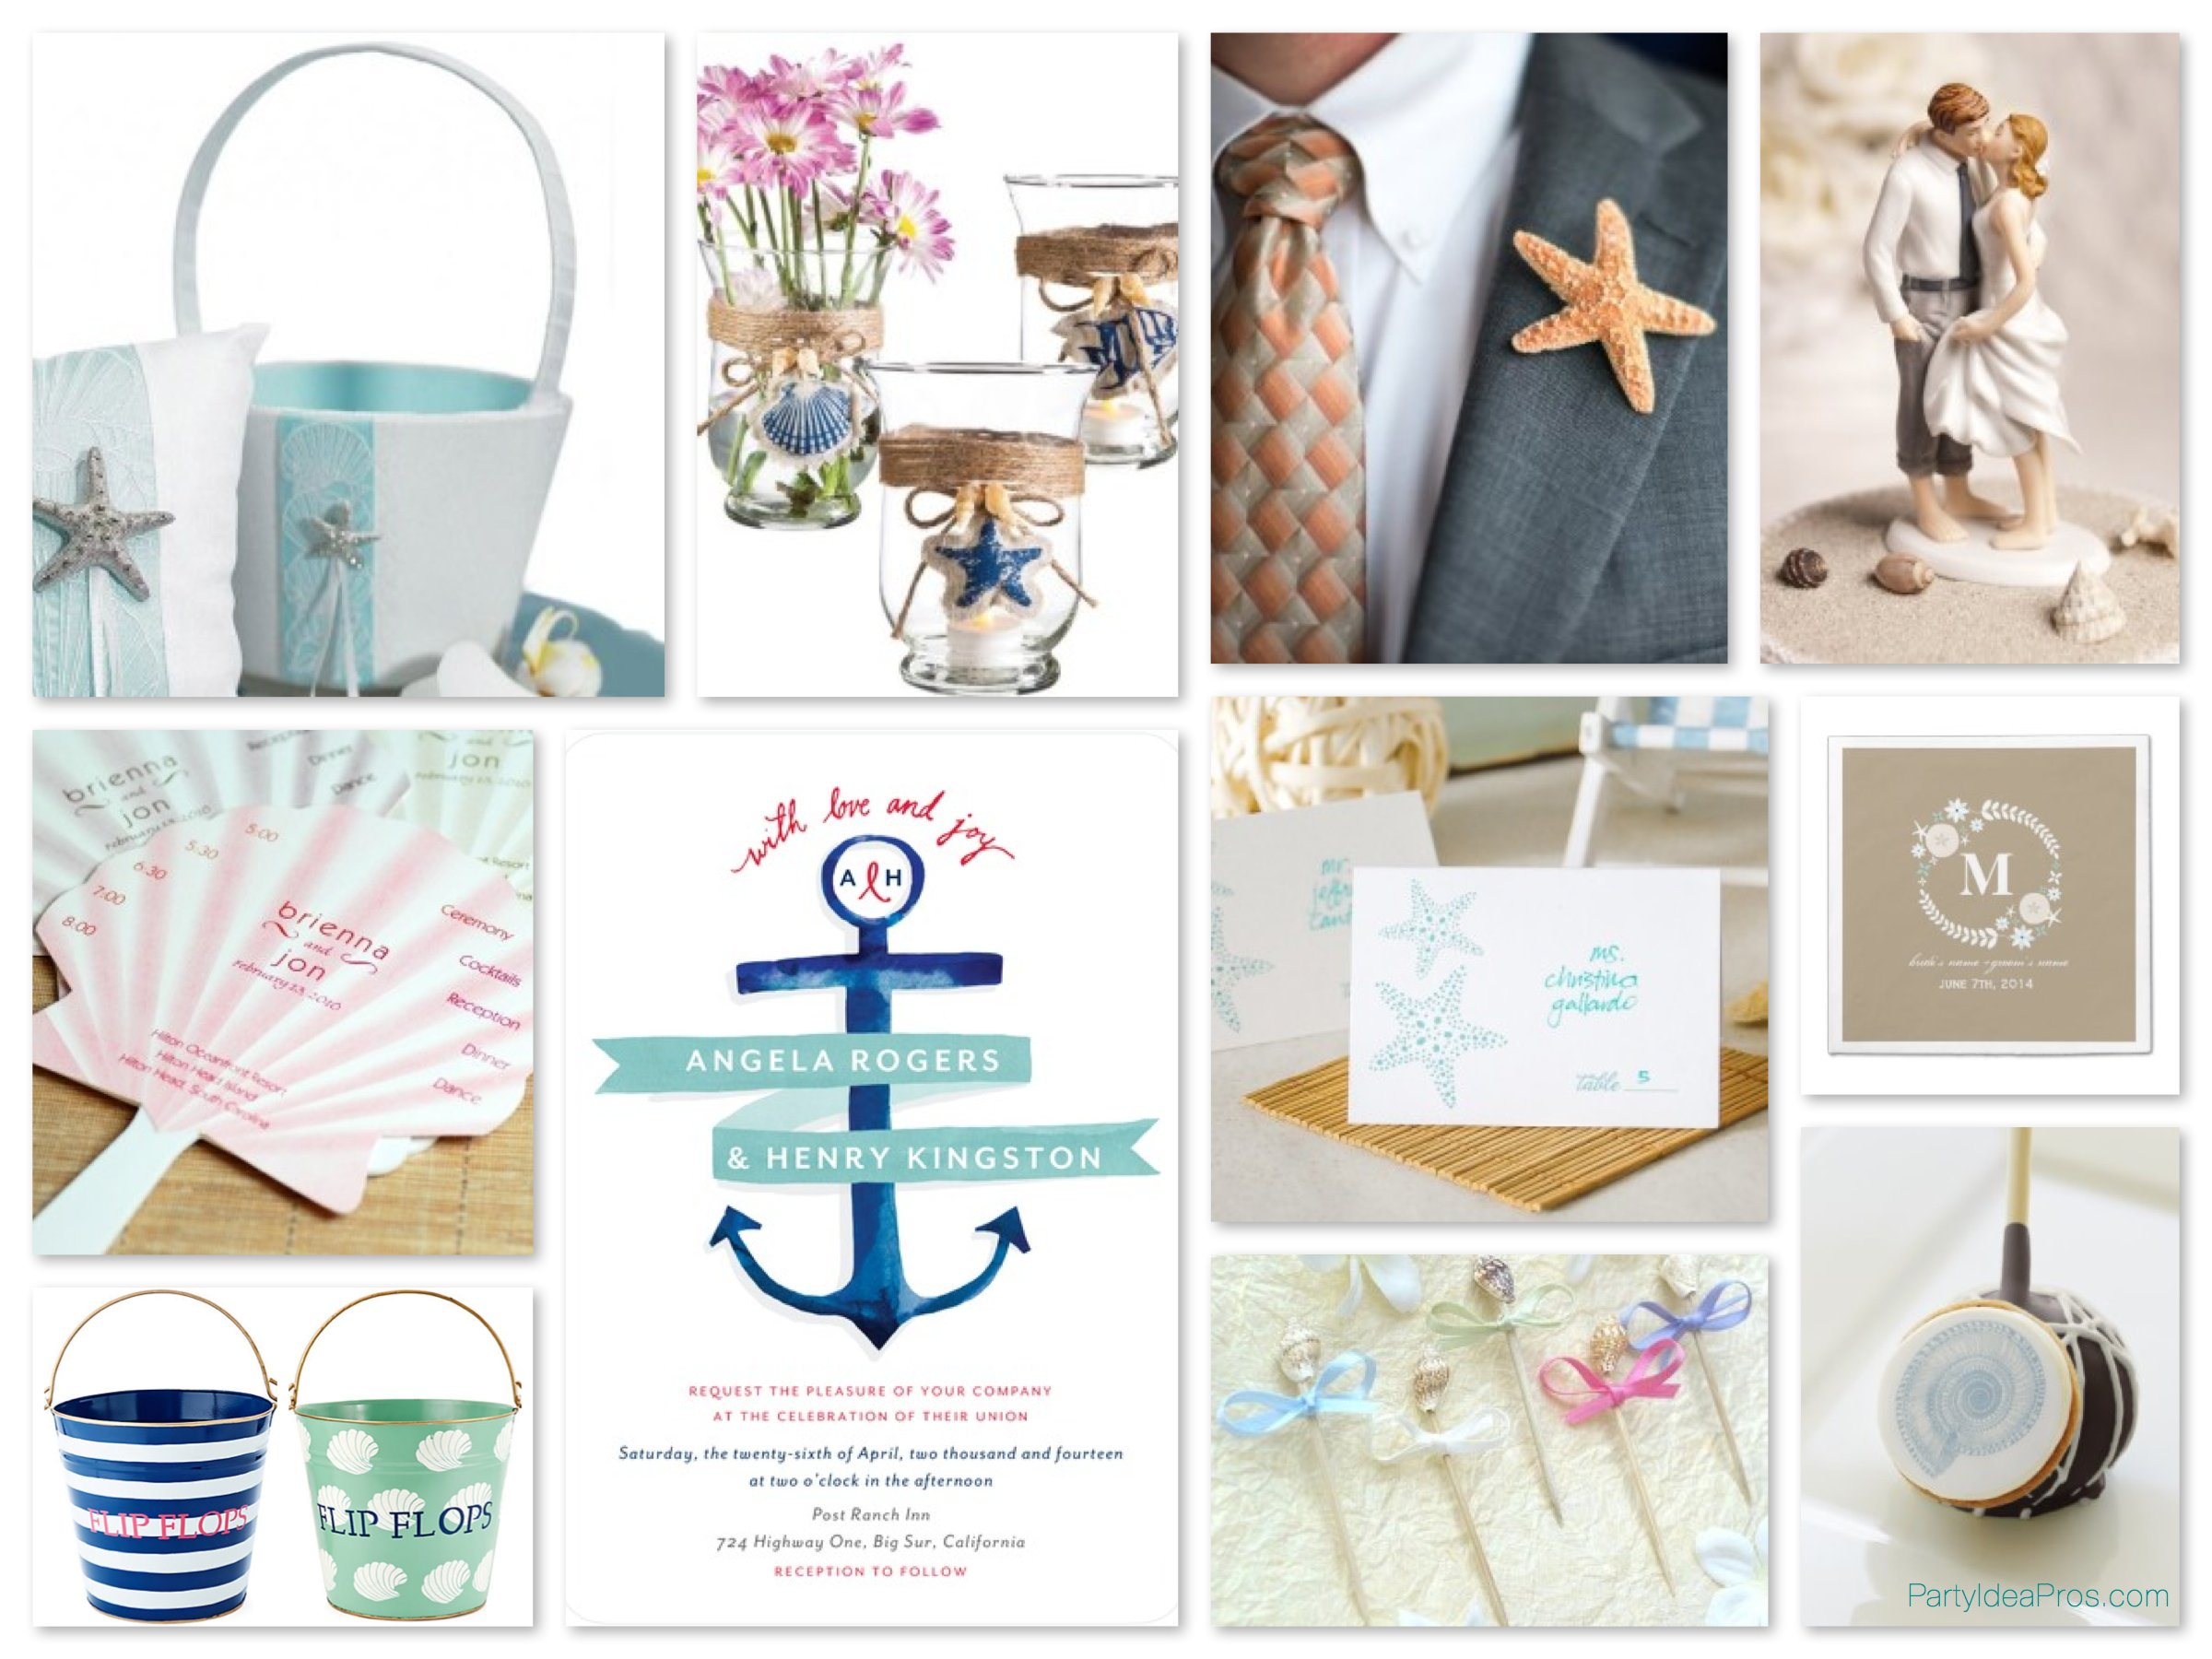 Nautical & Beach Theme Wedding Planning Ideas & Supplies